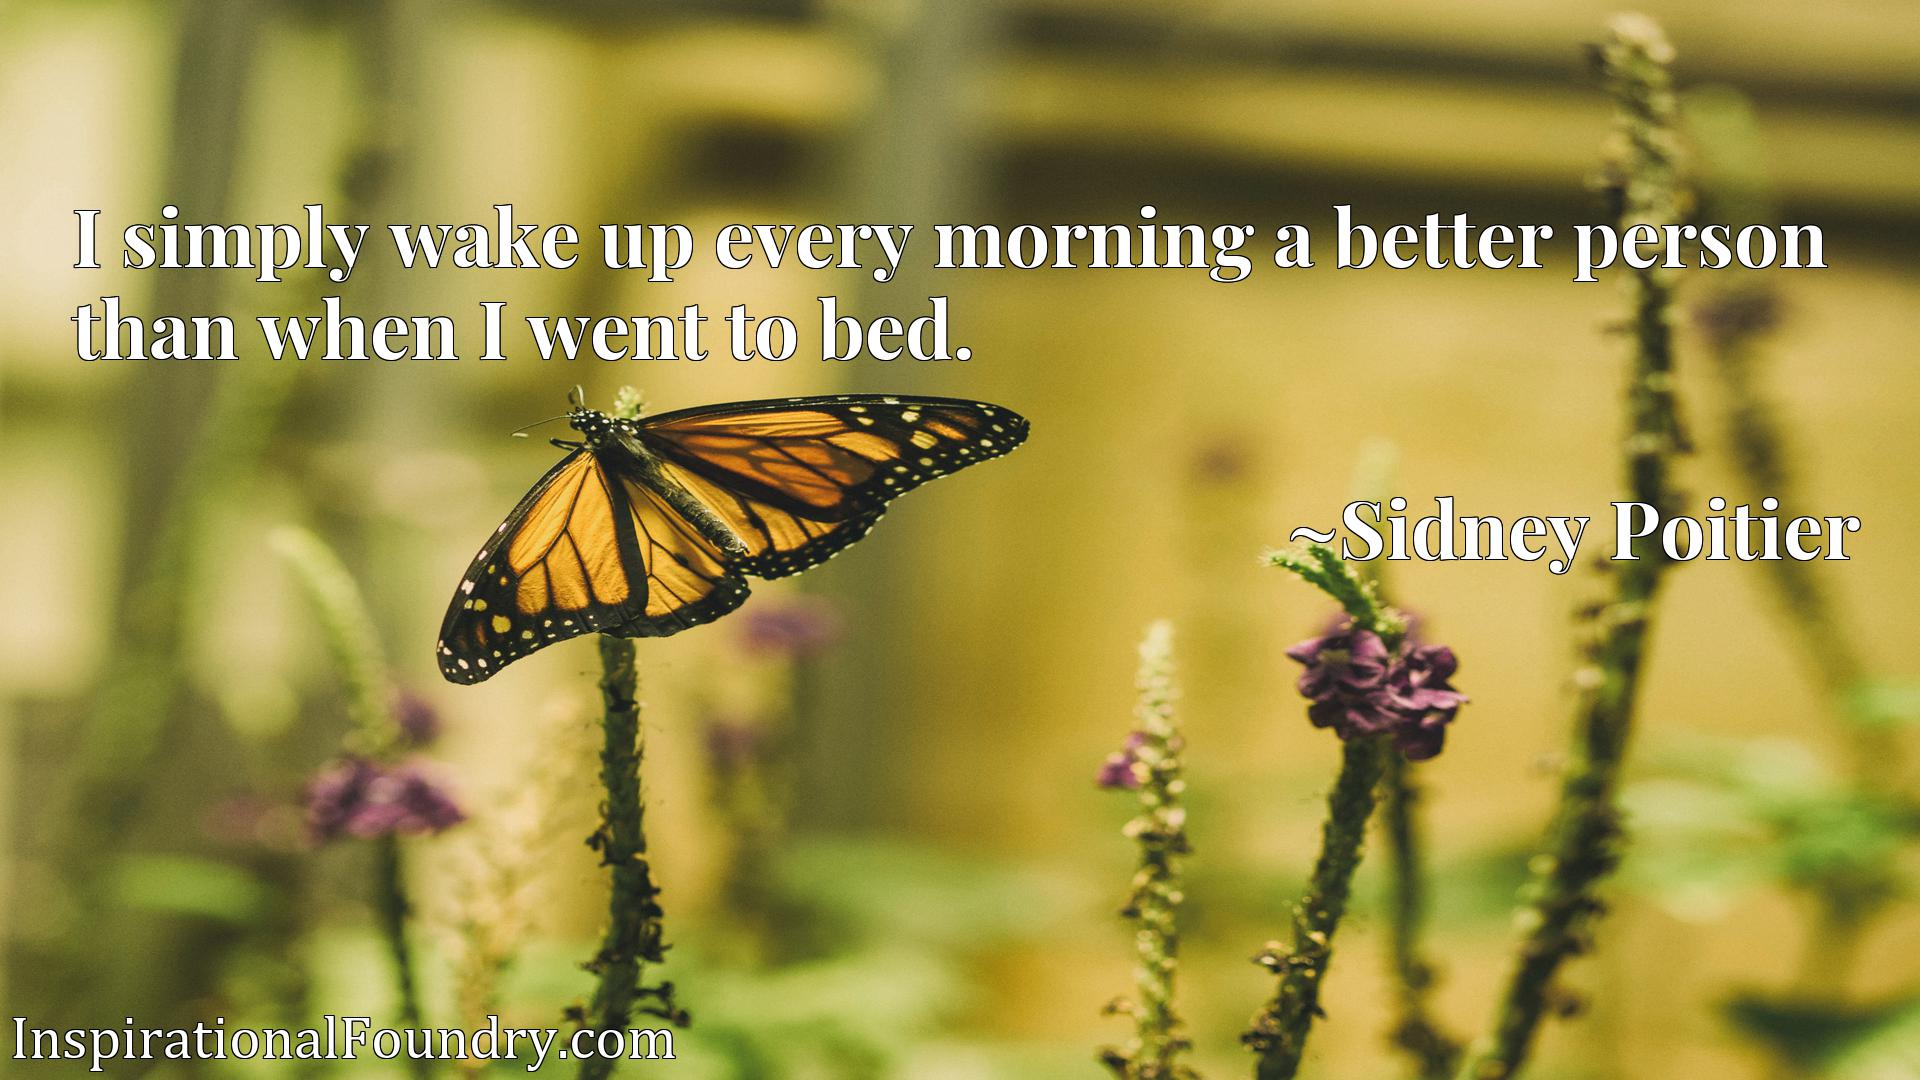 I simply wake up every morning a better person than when I went to bed.